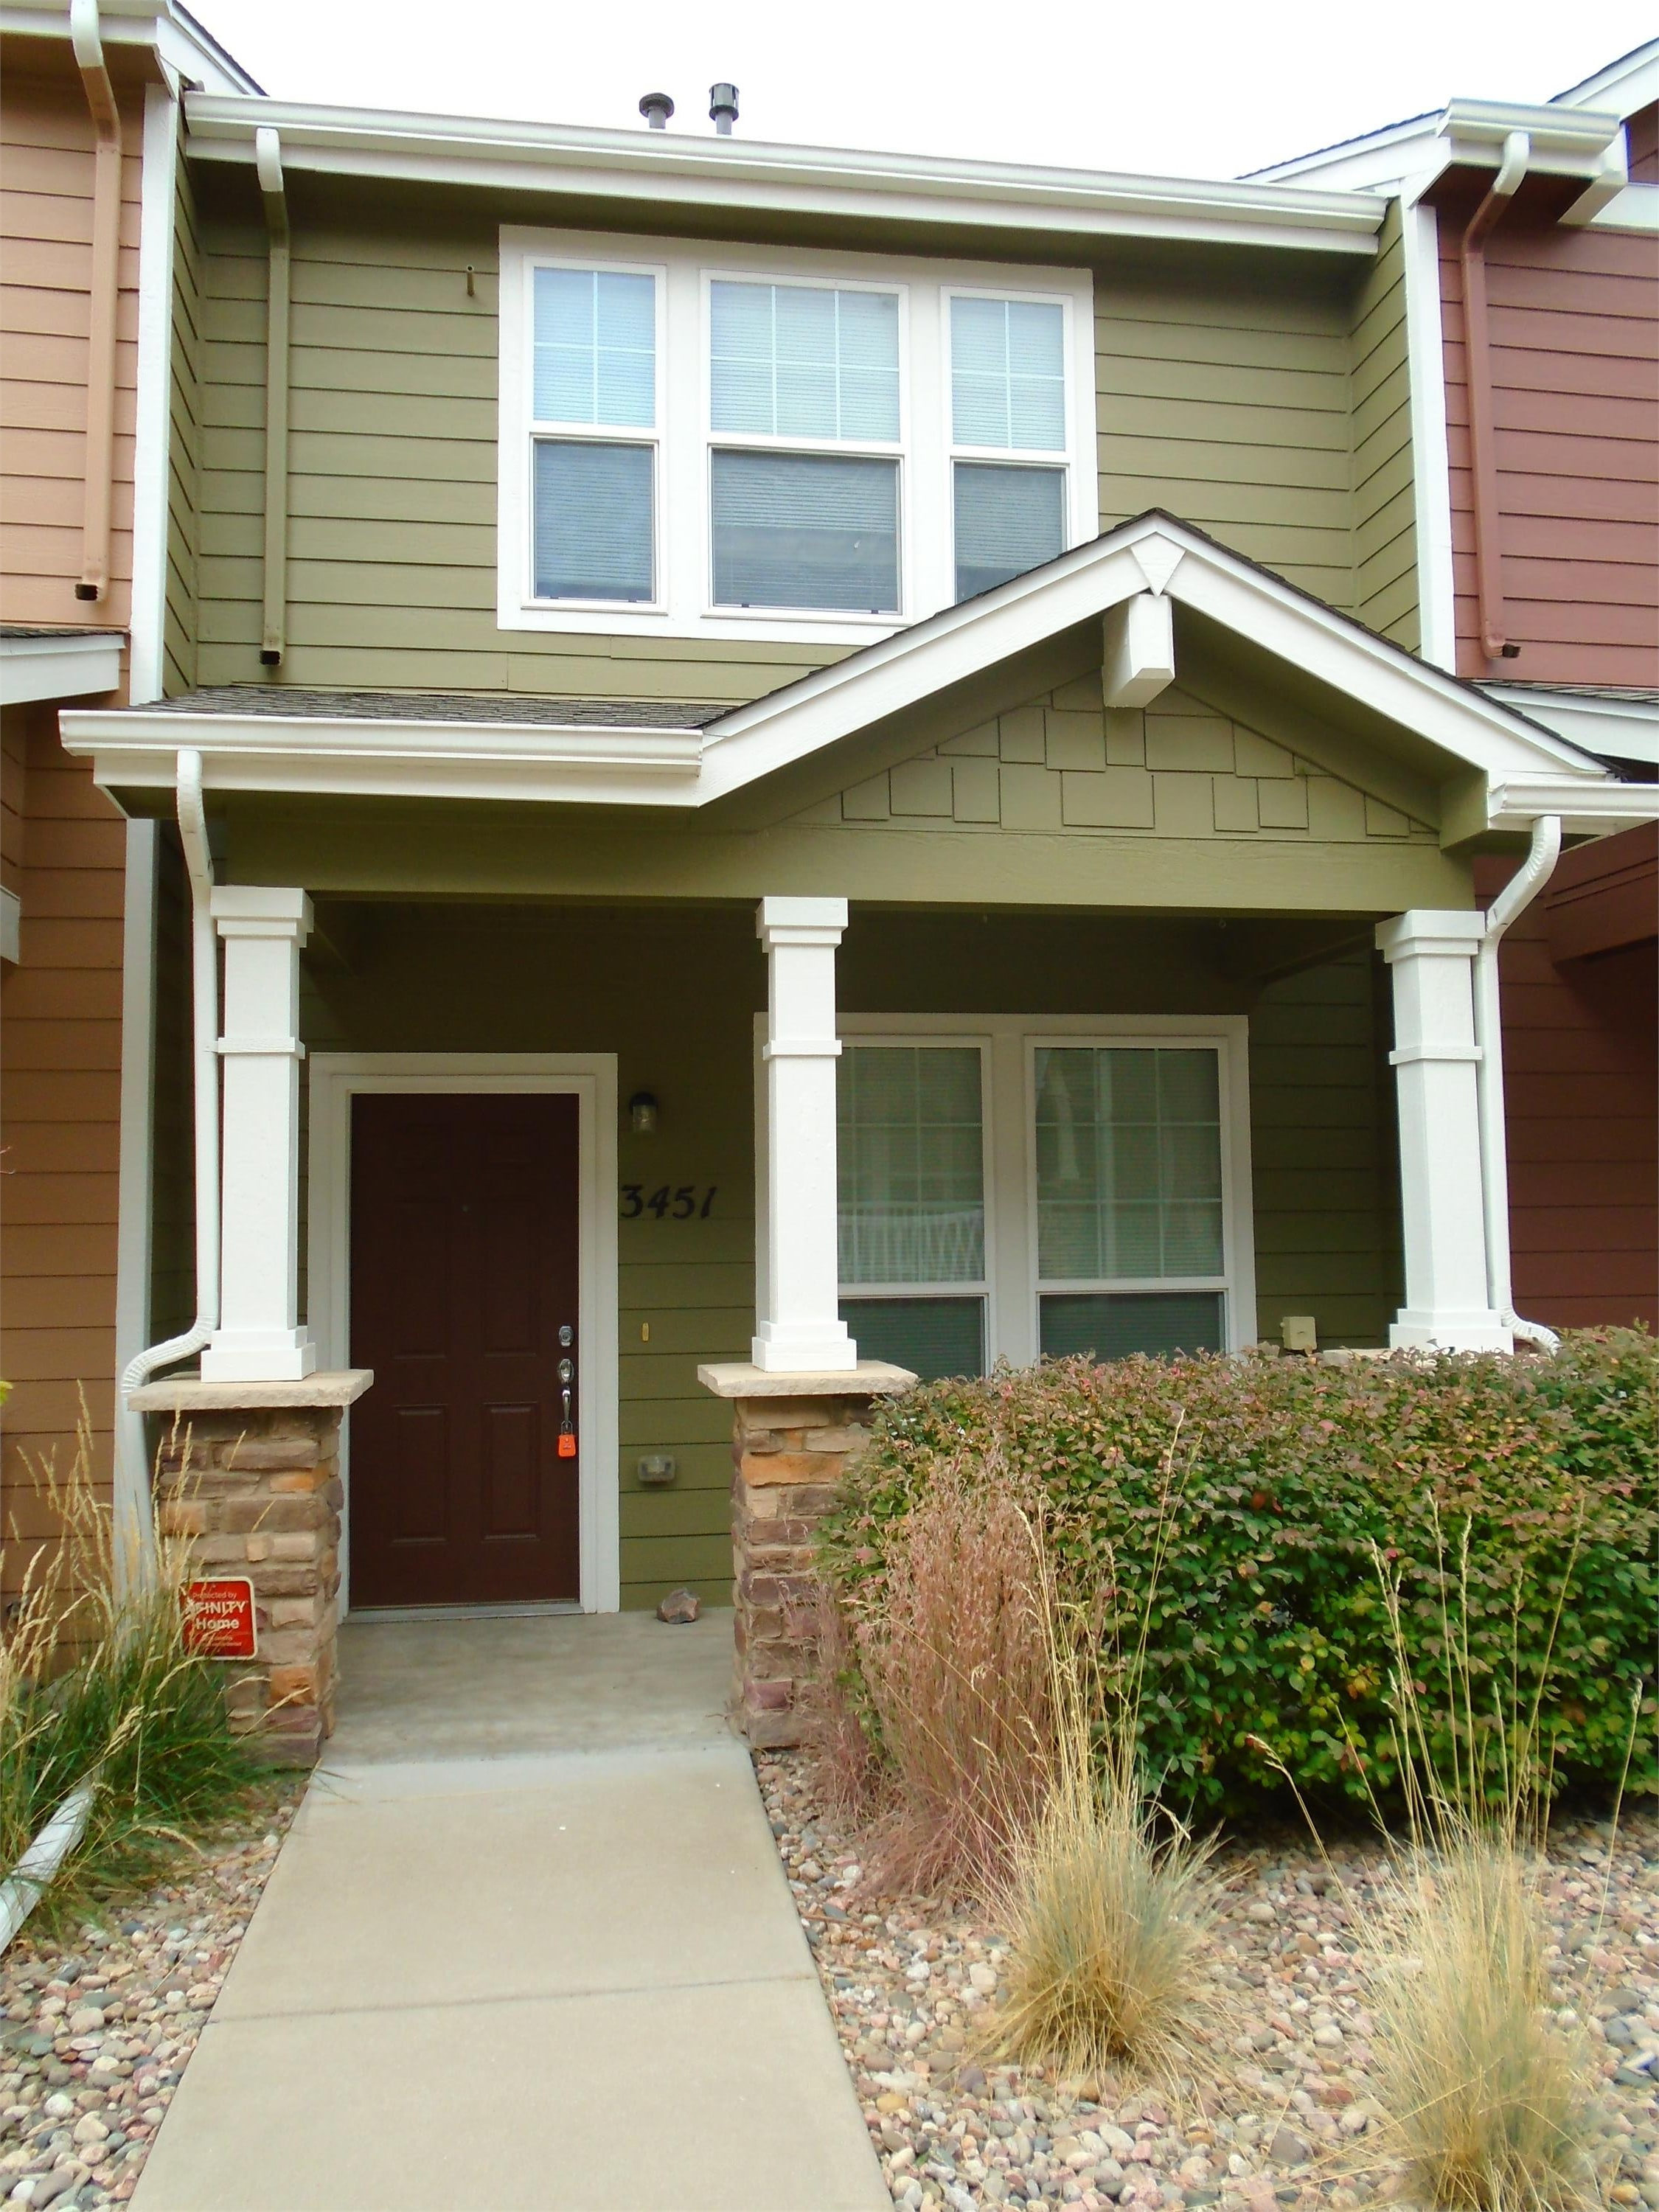 20 Best Apartments In Security-Widefield, CO (with pics)!